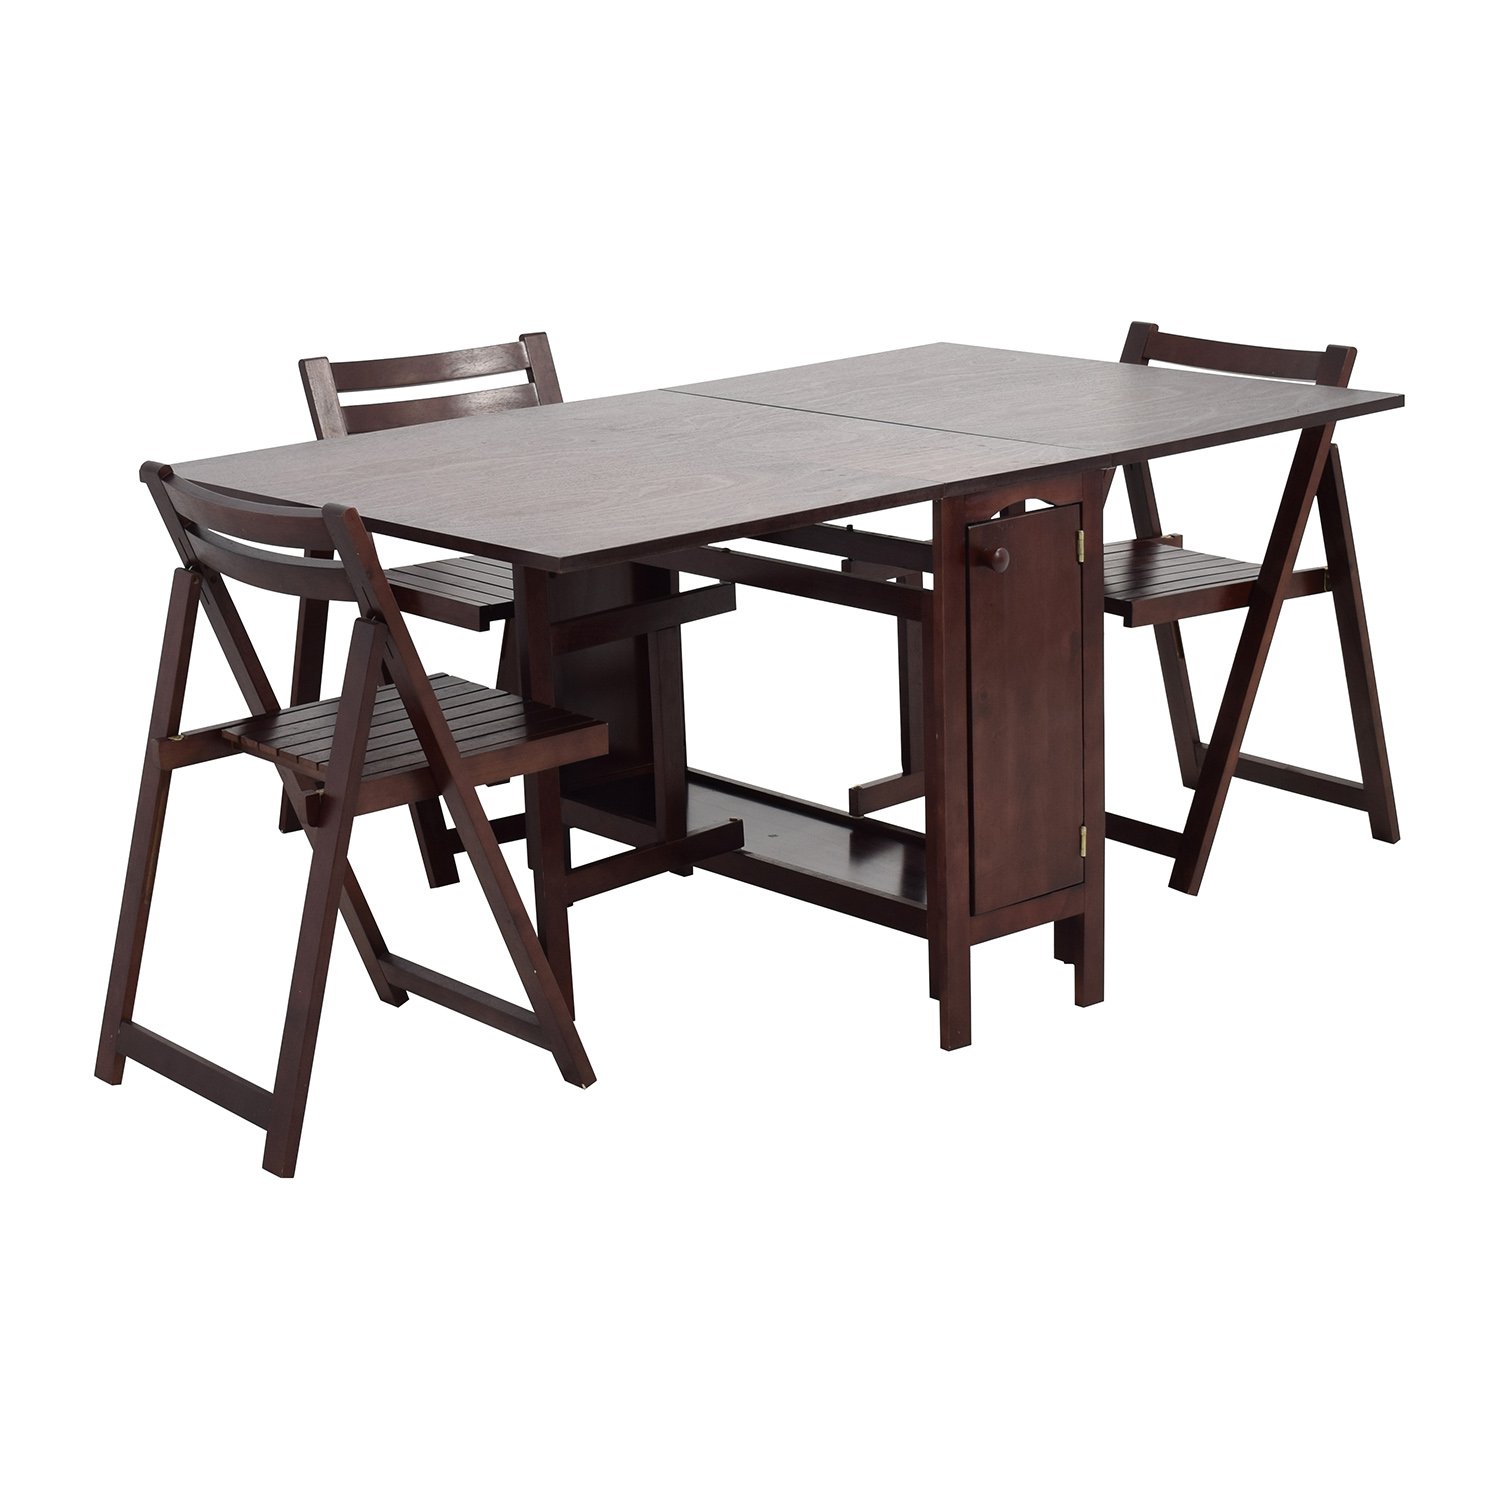 66 off home depot foldable kitchen table with folding